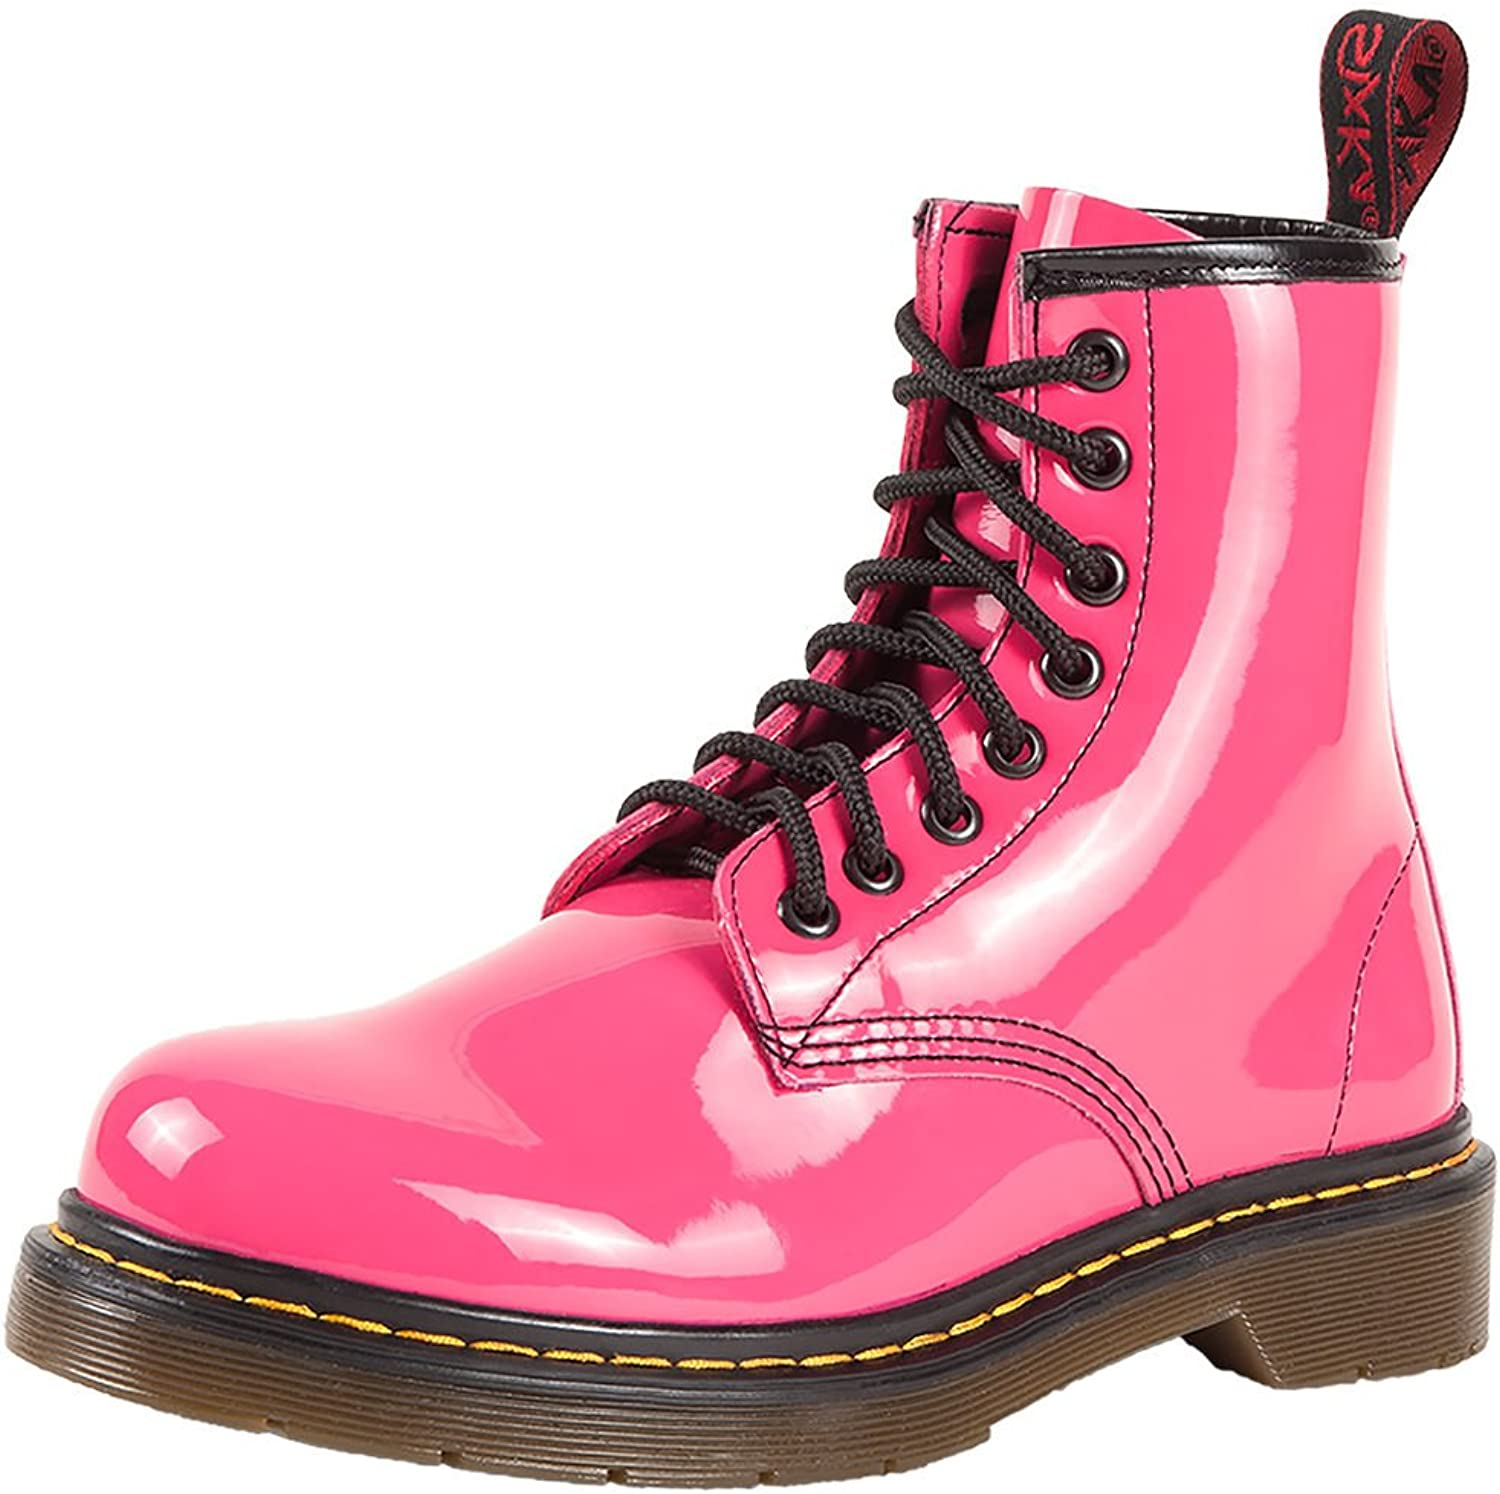 SK7 Women's Hot Stylish Coventry Gloss Leather Fashion Ankle Boots pink Pink - 9